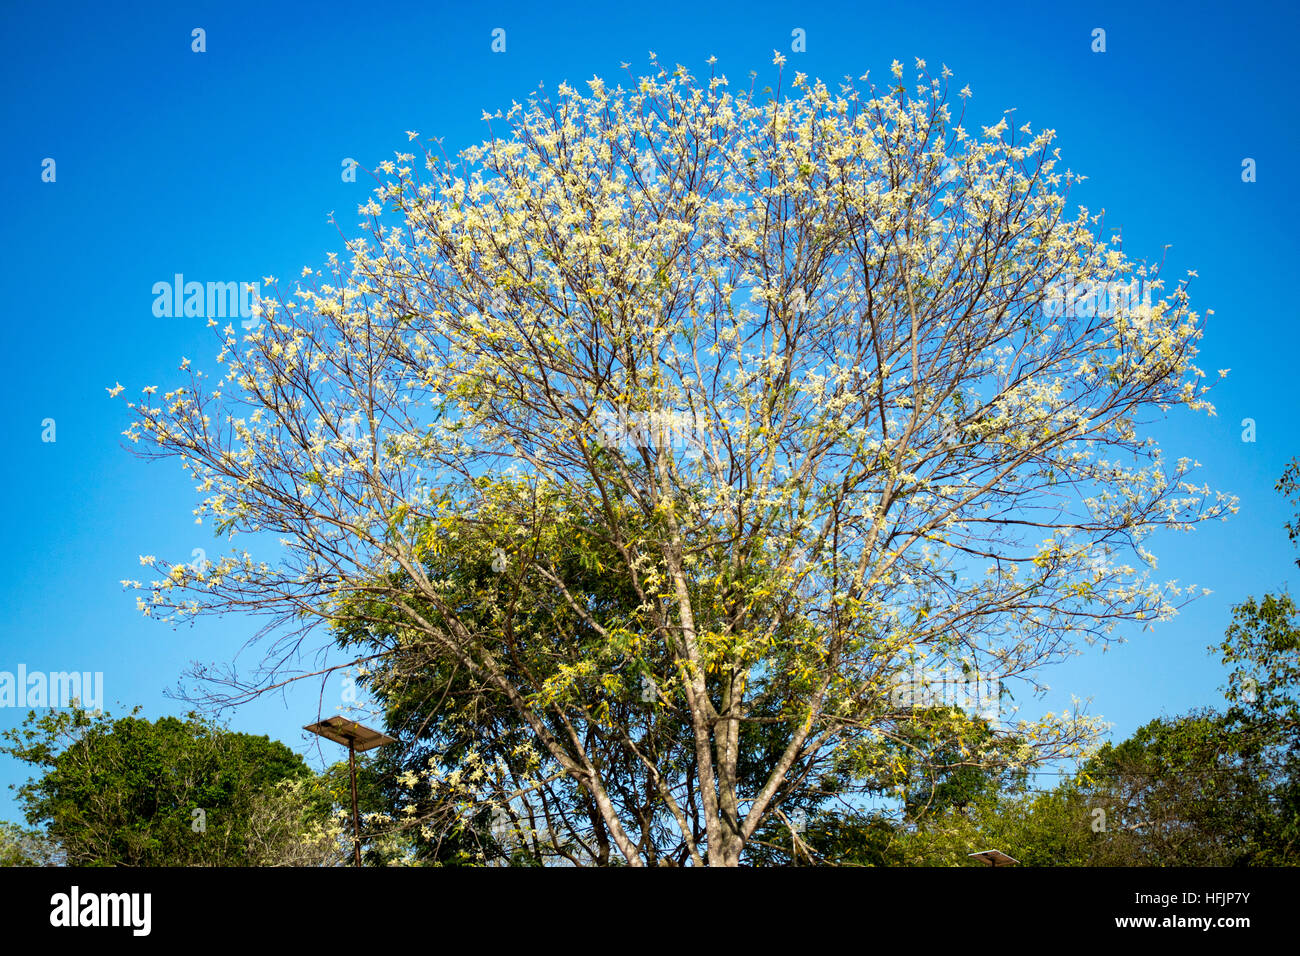 Pink flowered tree stock photos pink flowered tree stock images pink flowered tree stock image mightylinksfo